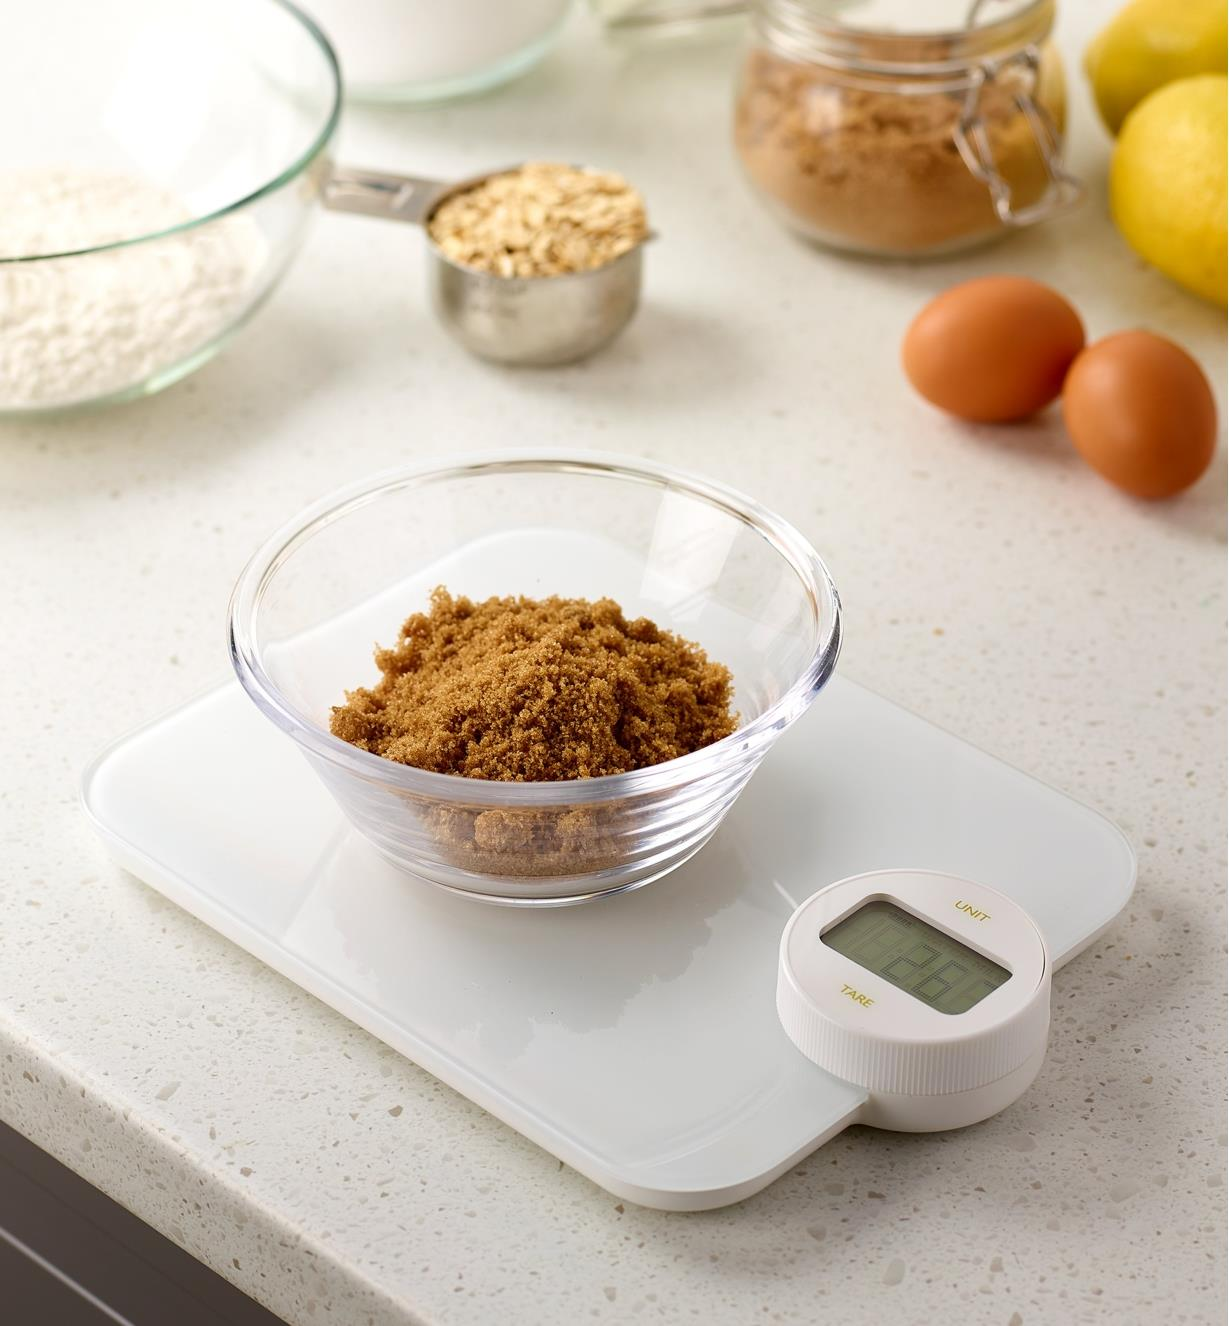 Battery-Free Kitchen Scale weighing a bowl of sugar